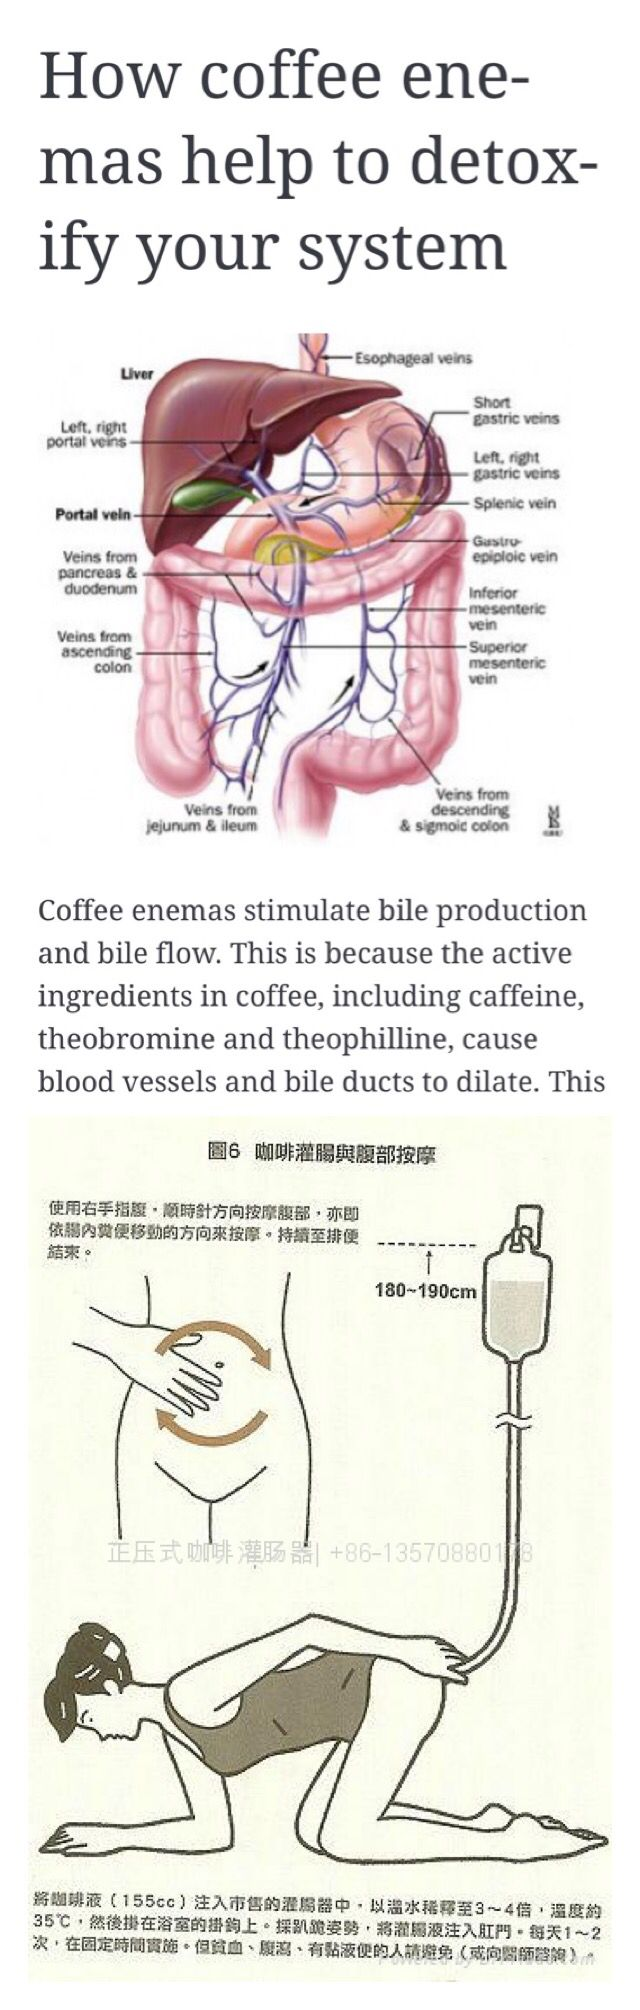 Detoxify your liver with coffee enemas                                                                                                                                                                                 More